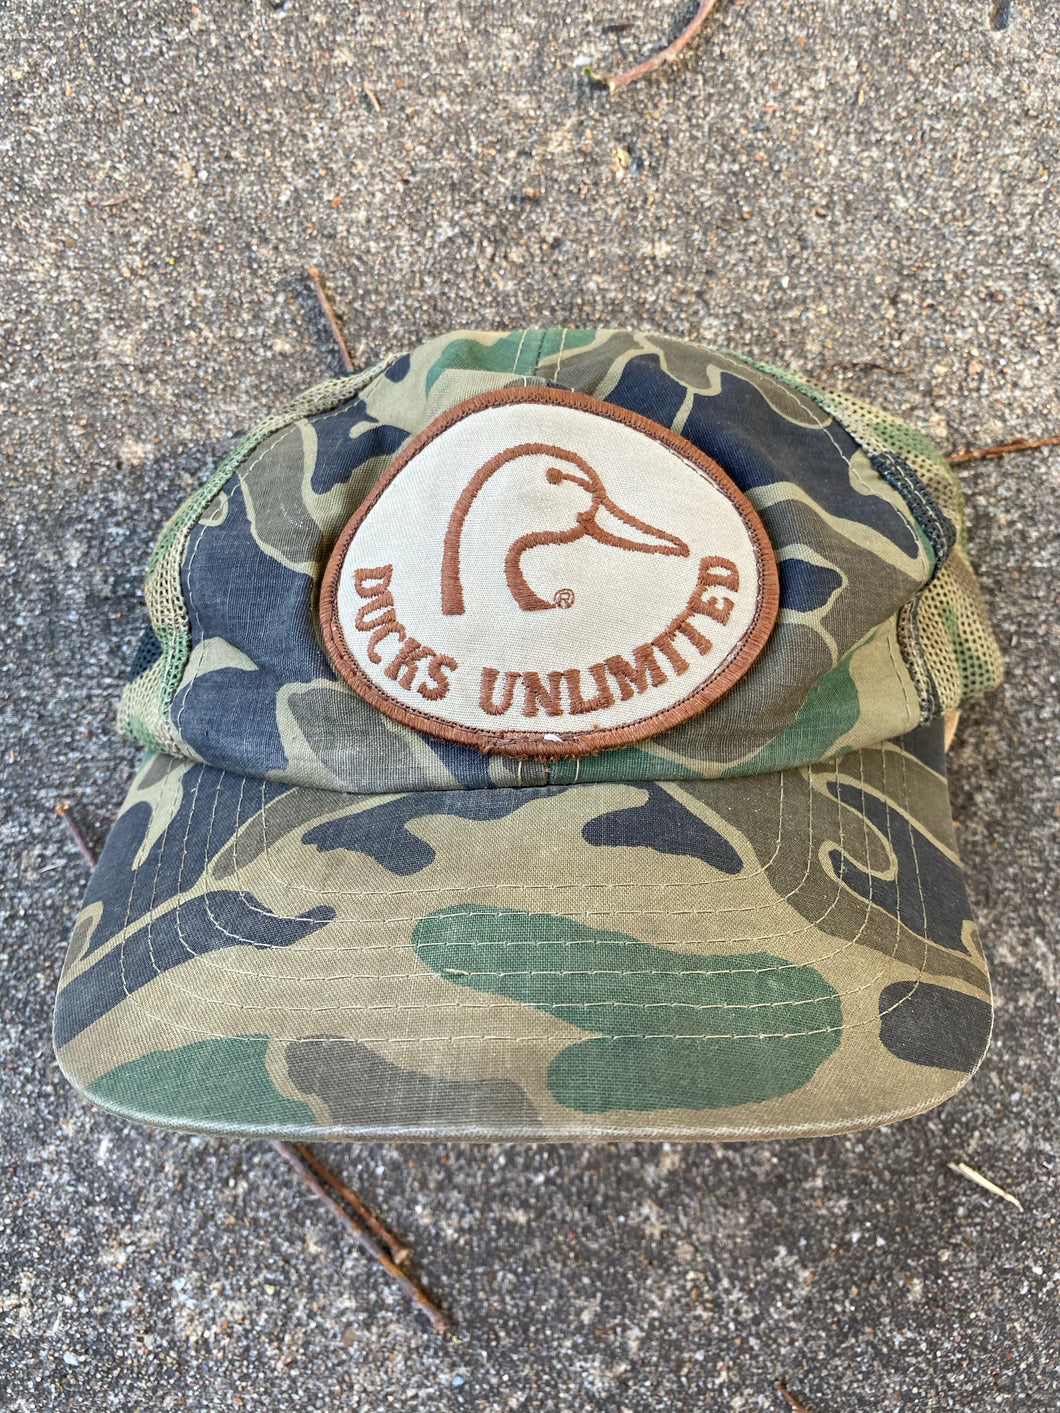 Ducks Unlimited Snapback